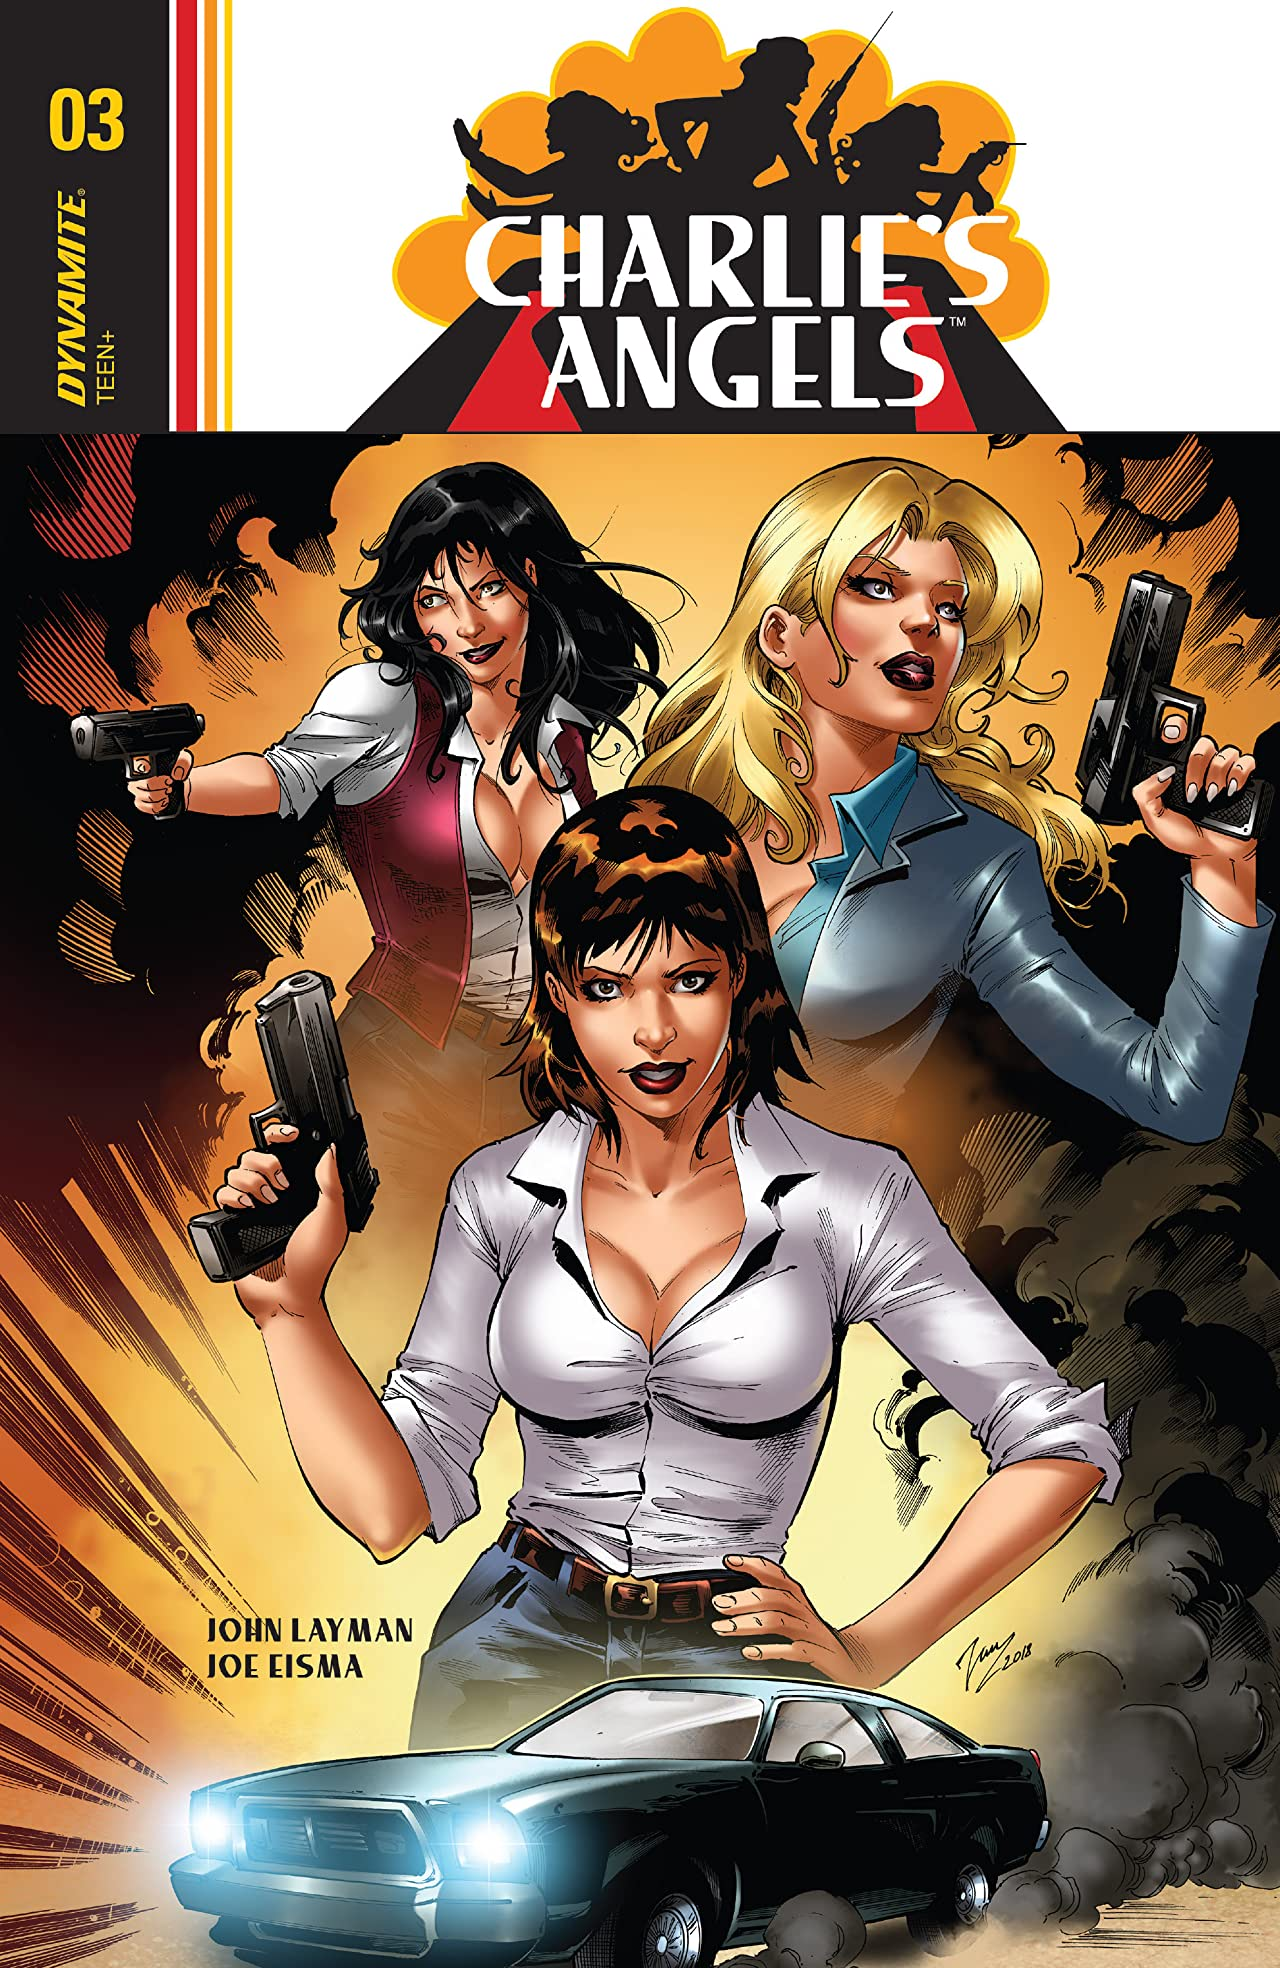 Charlie's Angels #3